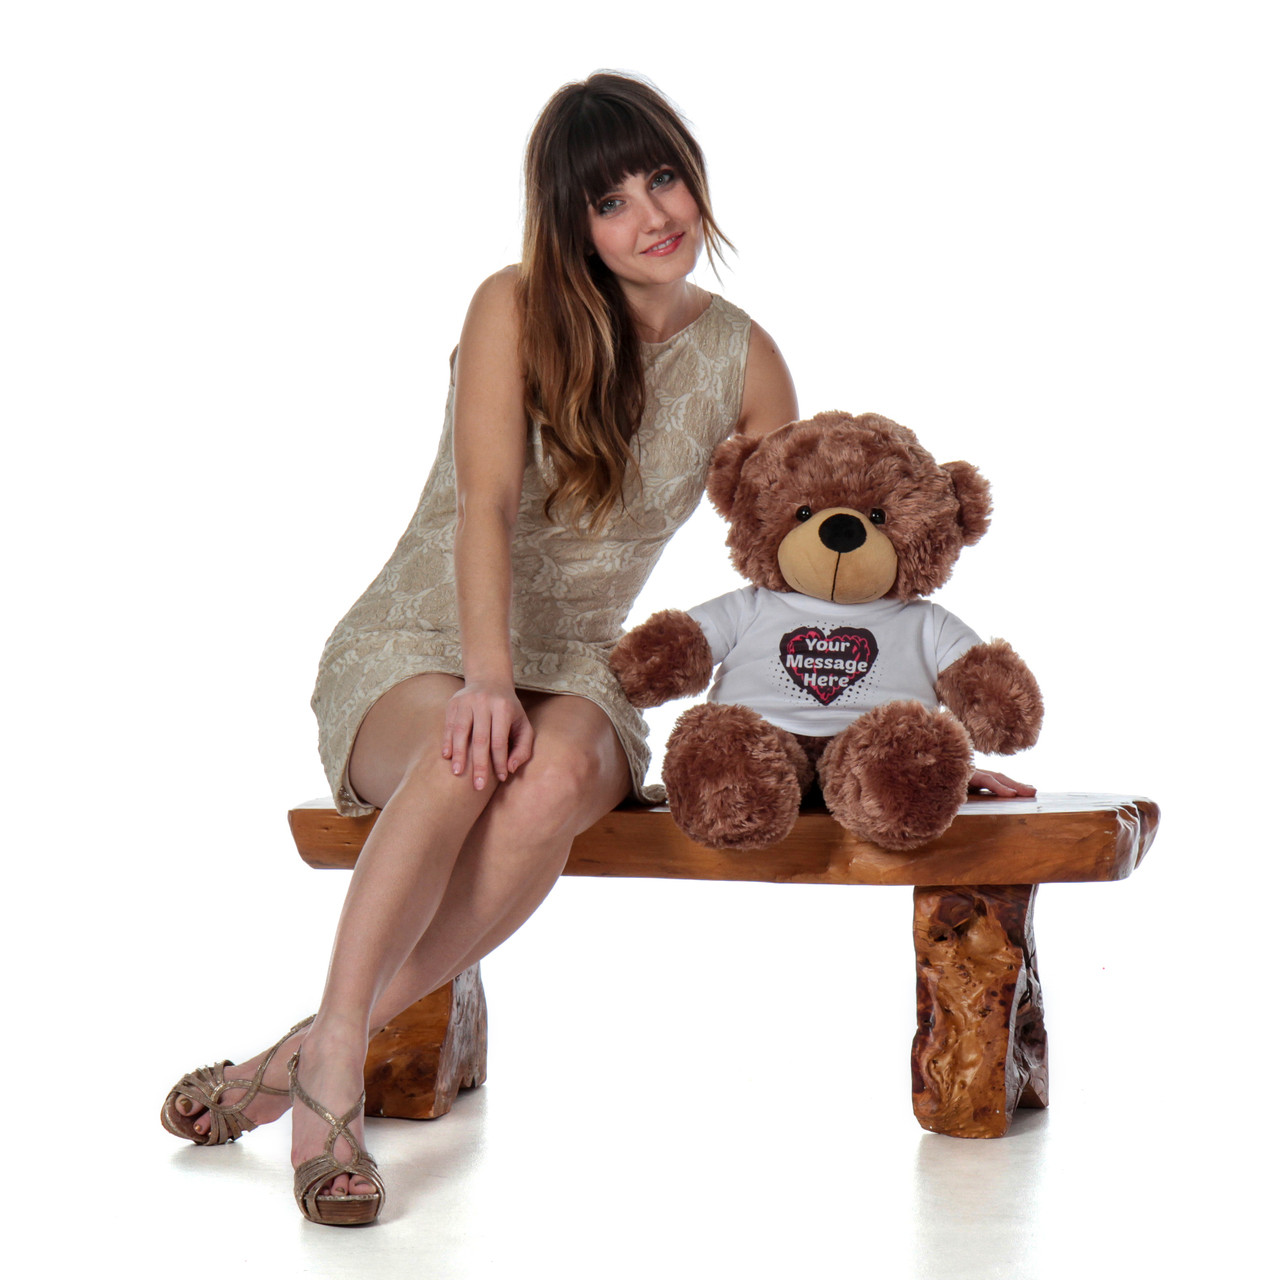 2 Foot Mocha Brown Super Soft Cute Teddy Bear with Personalized T-shirt